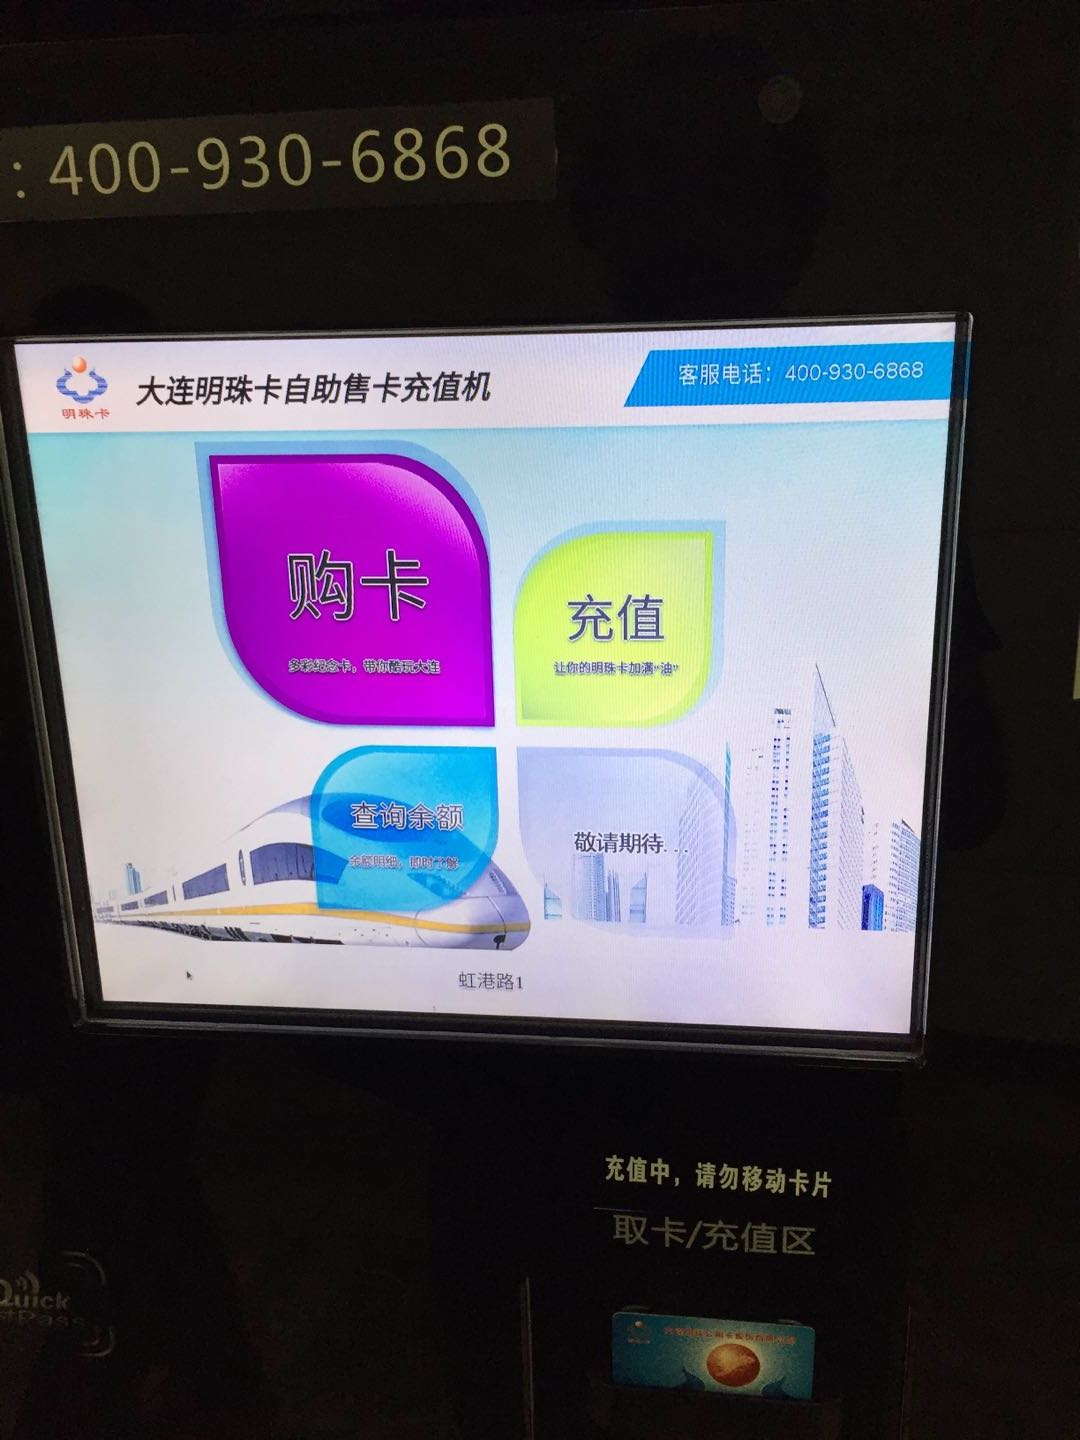 Dalian metro ticket machine.